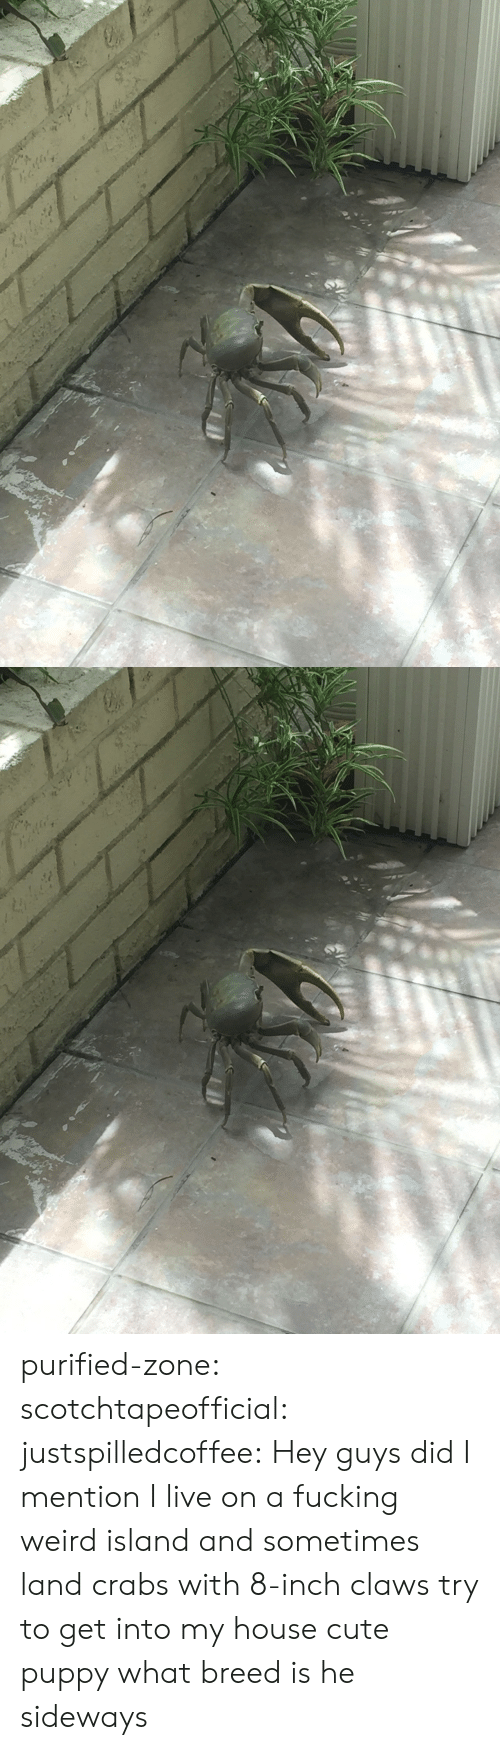 cute puppy: purified-zone: scotchtapeofficial:  justspilledcoffee:  Hey guys did I mention I live on a fucking weird island and sometimes land crabs with 8-inch claws try to get into my house  cute puppy what breed is he  sideways